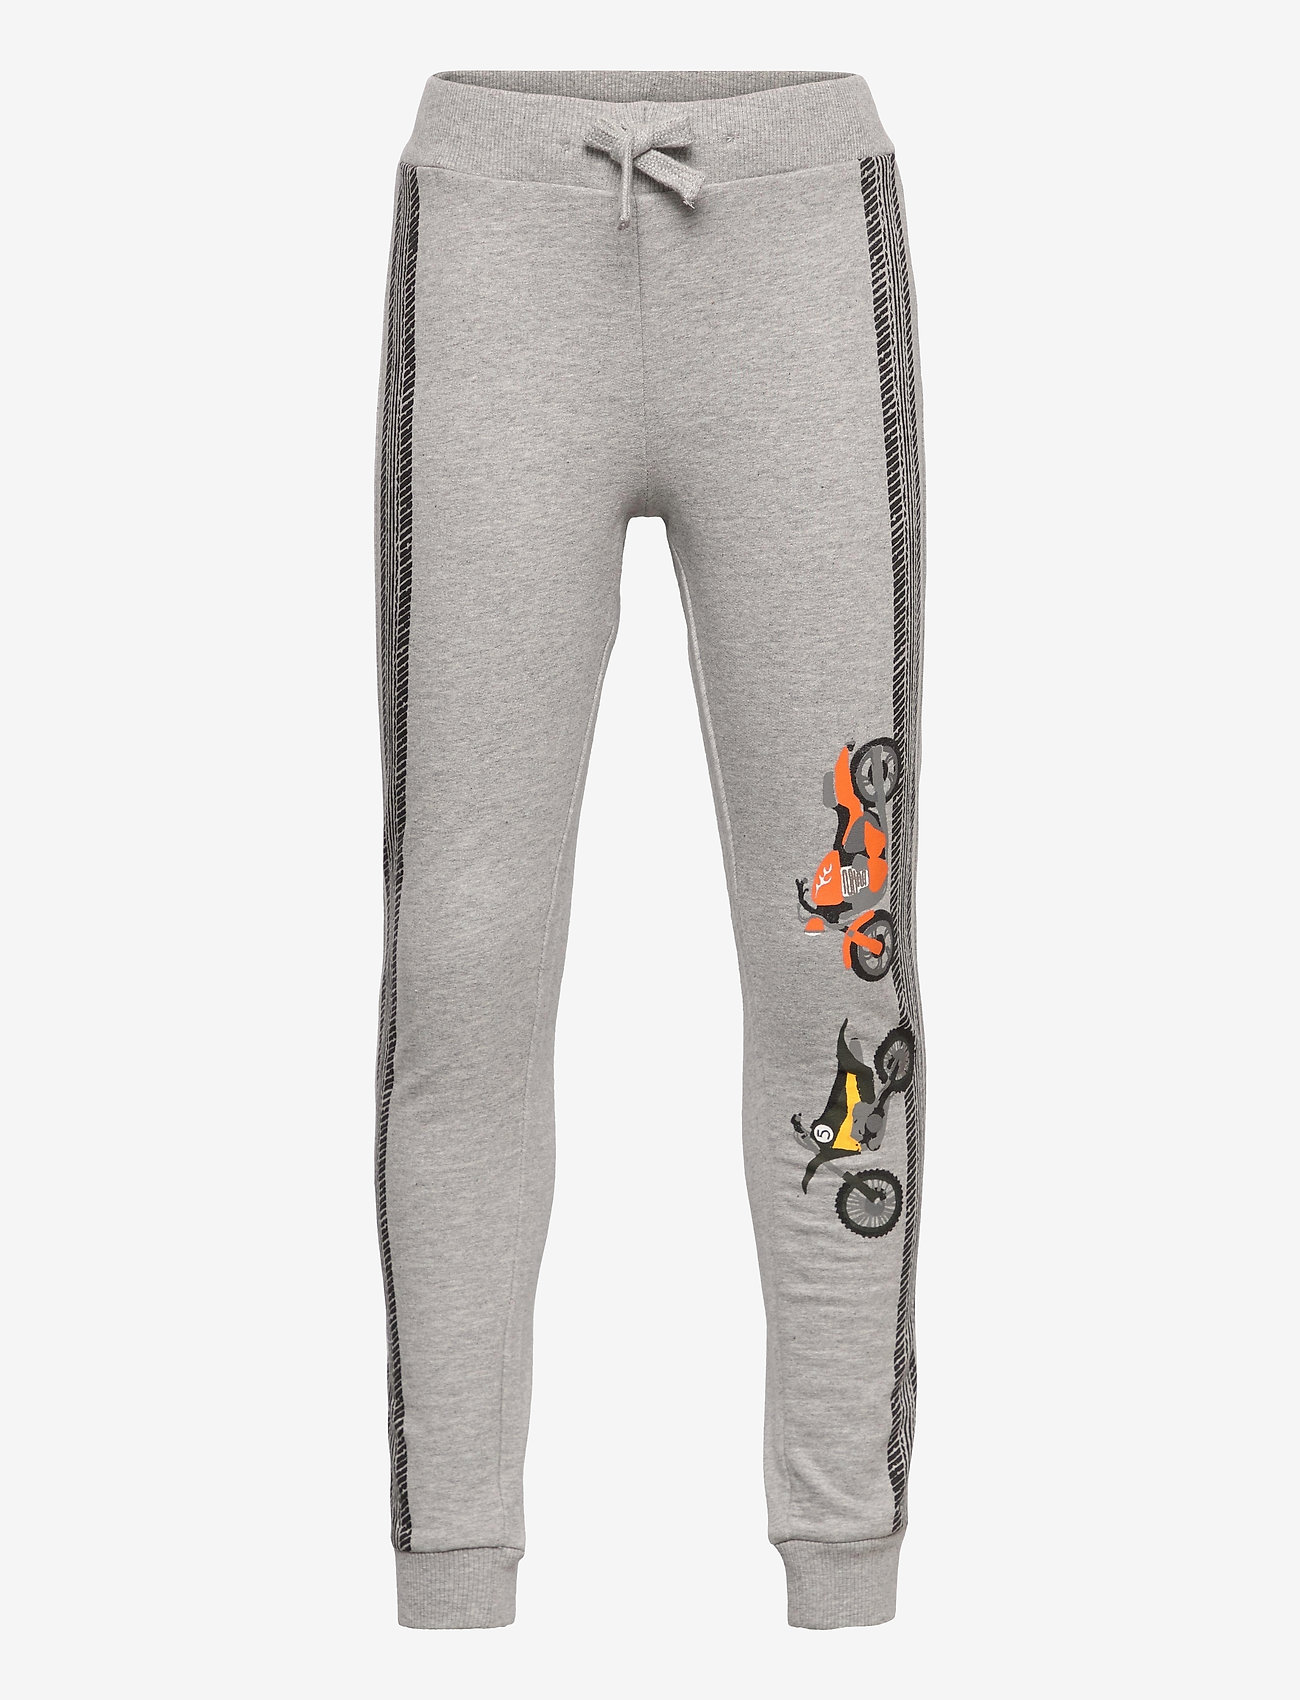 Lindex - Trousers motor place grey - trousers - grey - 0